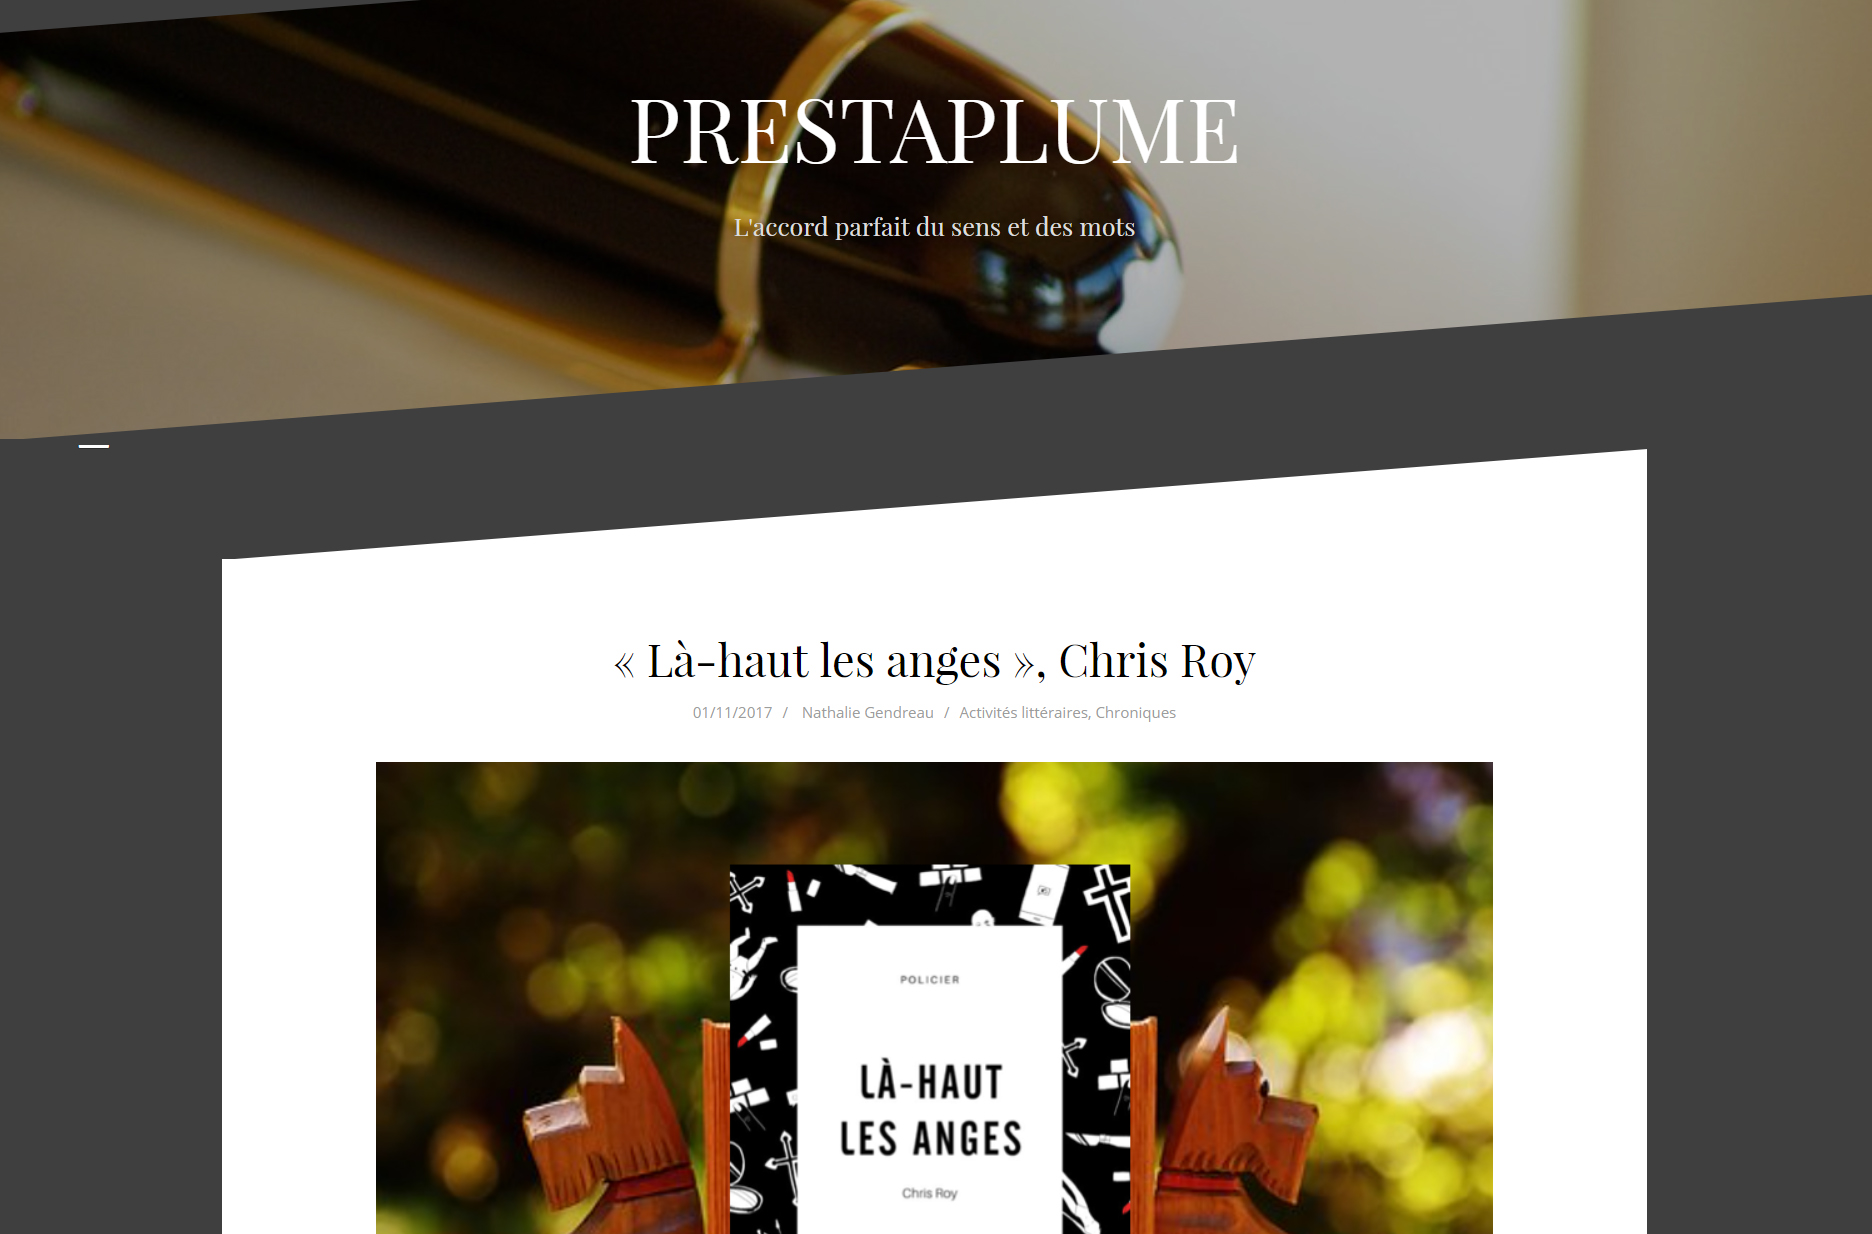 Prestaplume : Là-haut les anges, Chris Roy